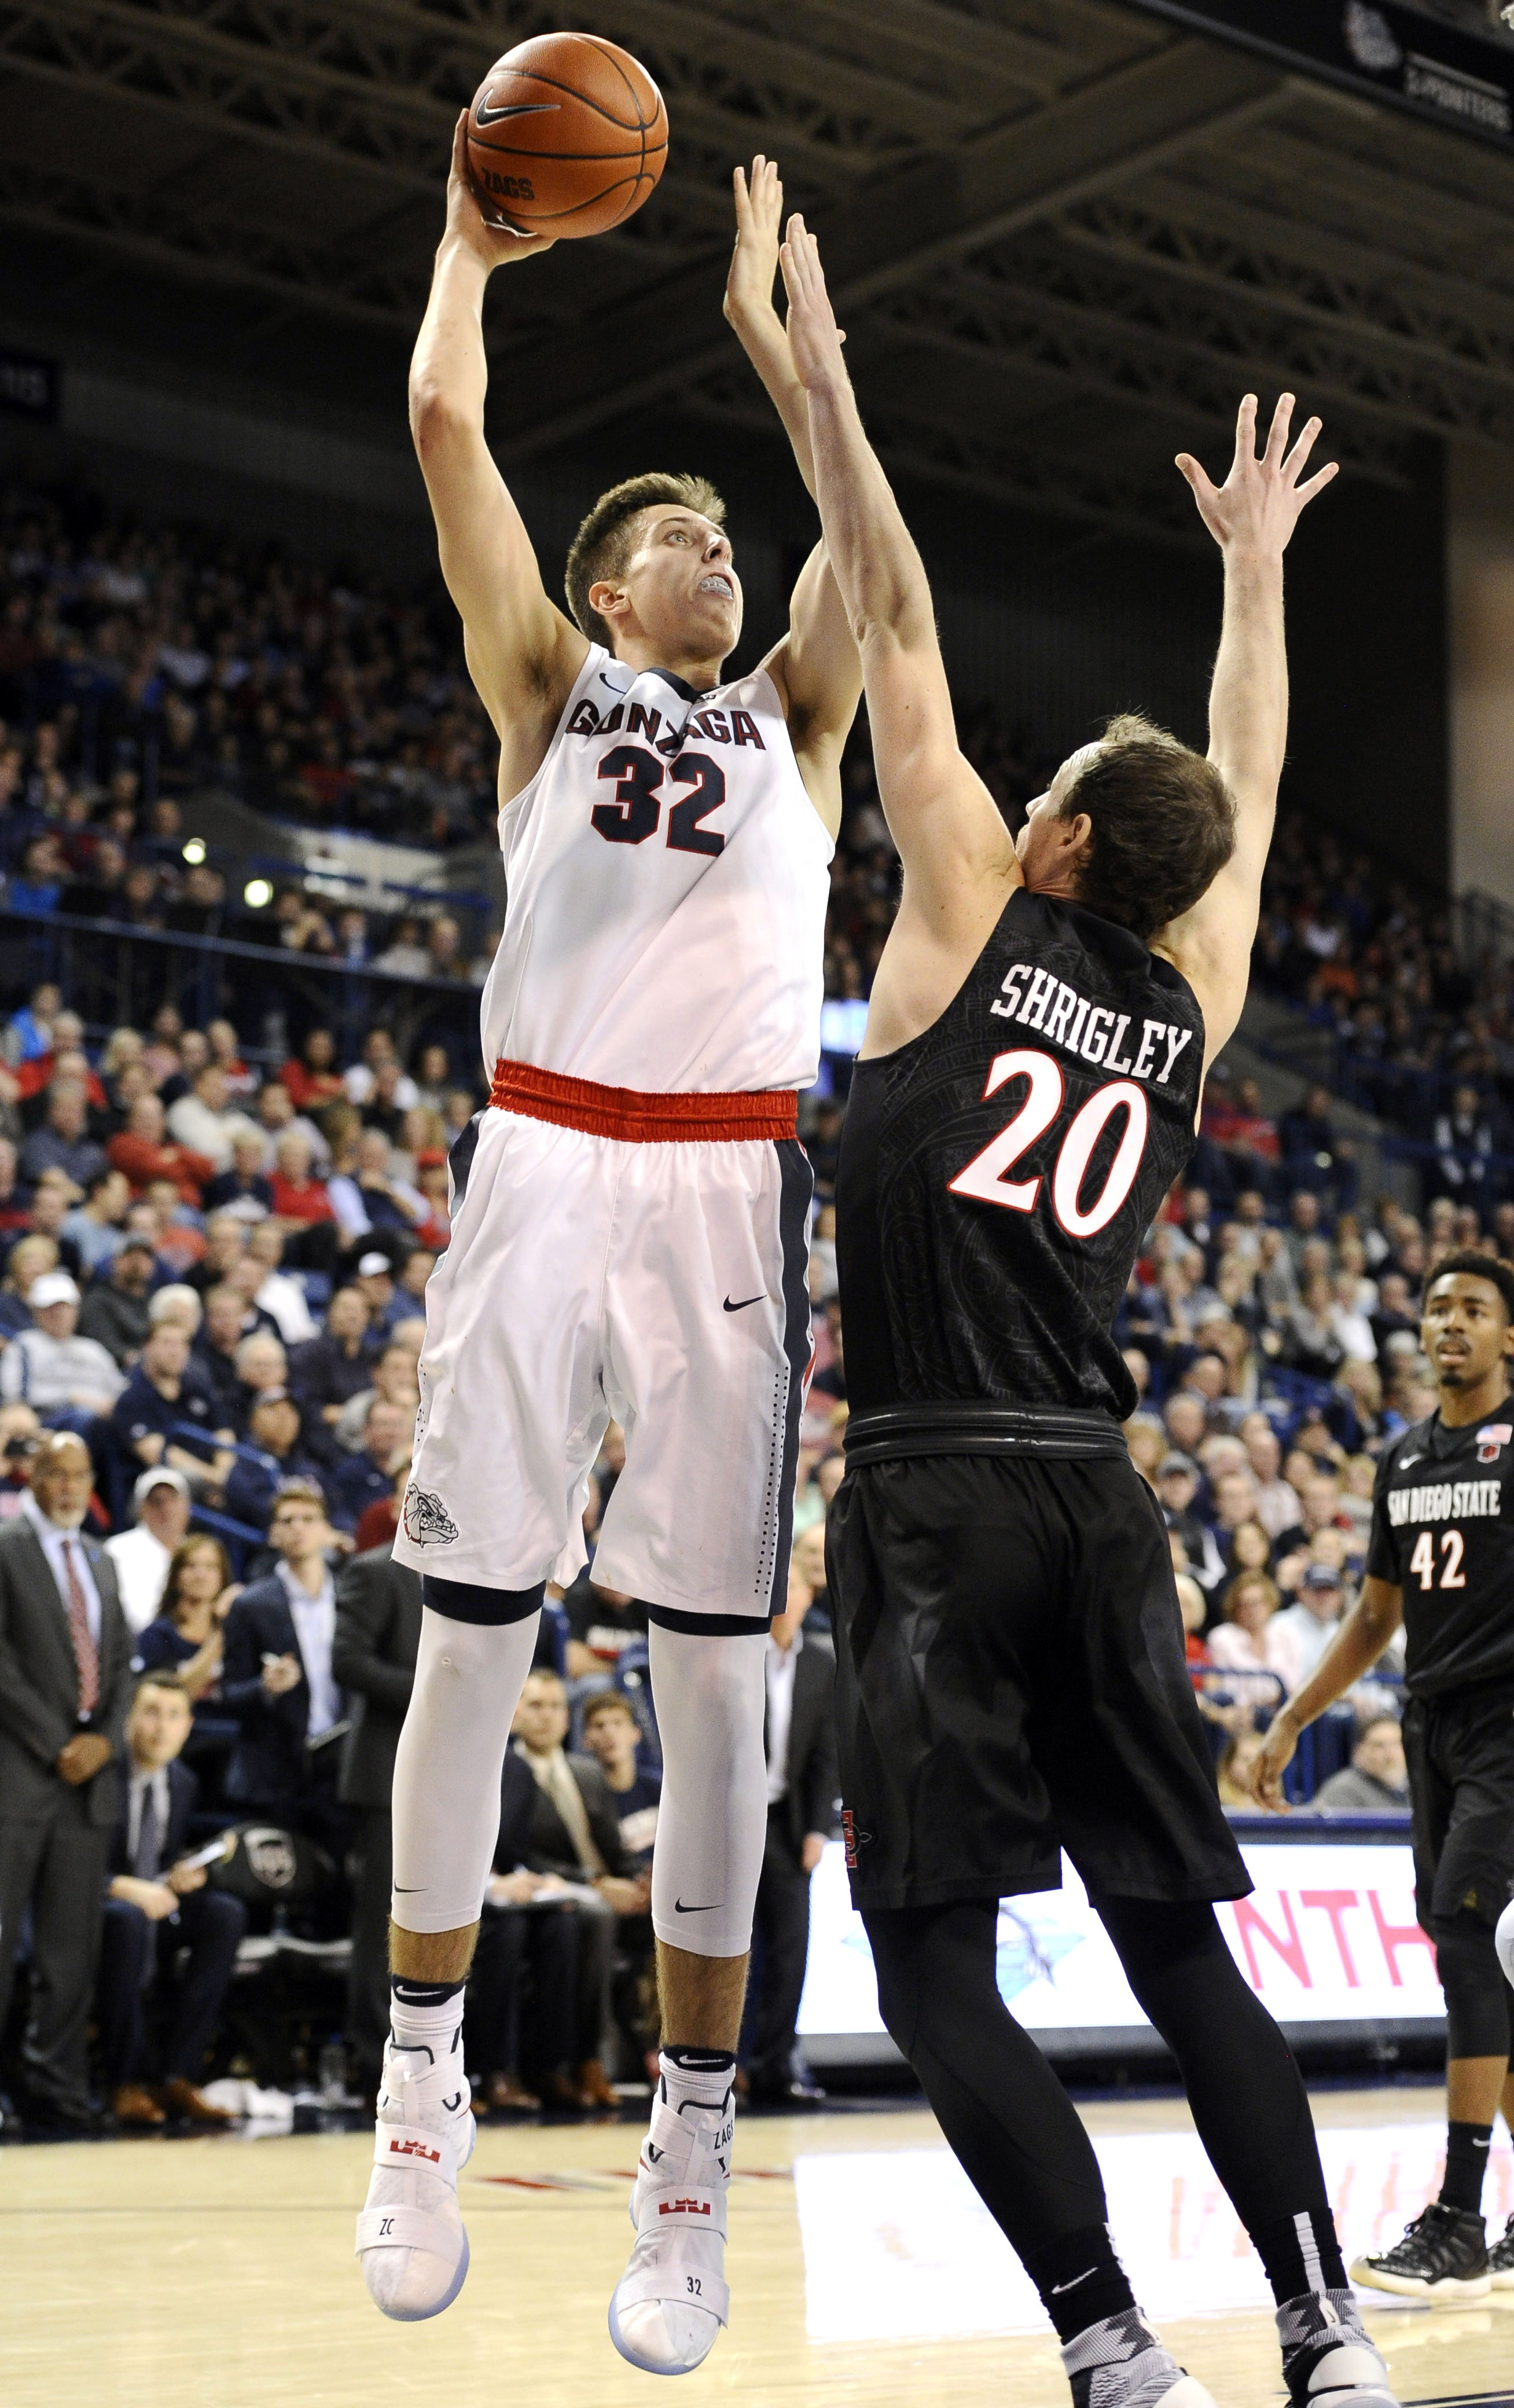 Nov 14, 2016; Spokane, WA, USA; Gonzaga Bulldogs forward Zach Collins (32) goes up for a shot against San Diego State Aztecs forward Matt Shrigley (20) during the first half at McCarthey Athletic Center. Mandatory Credit: James Snook-USA TODAY Sports